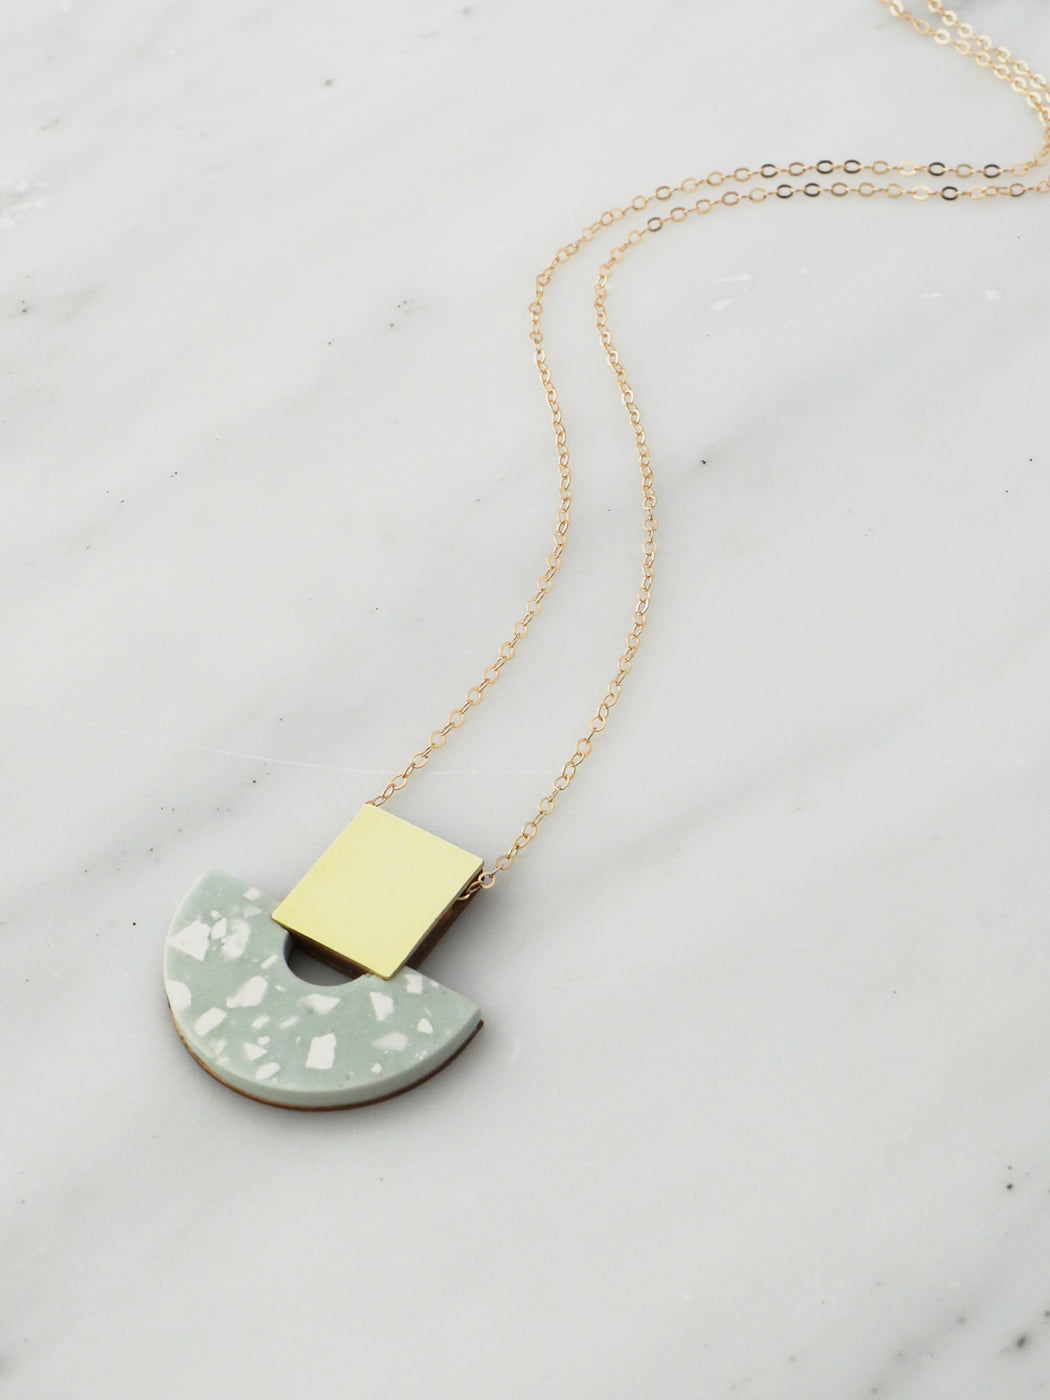 Jesmonite Terrazzo | Hand-cast jewellery | Handmade in North London.